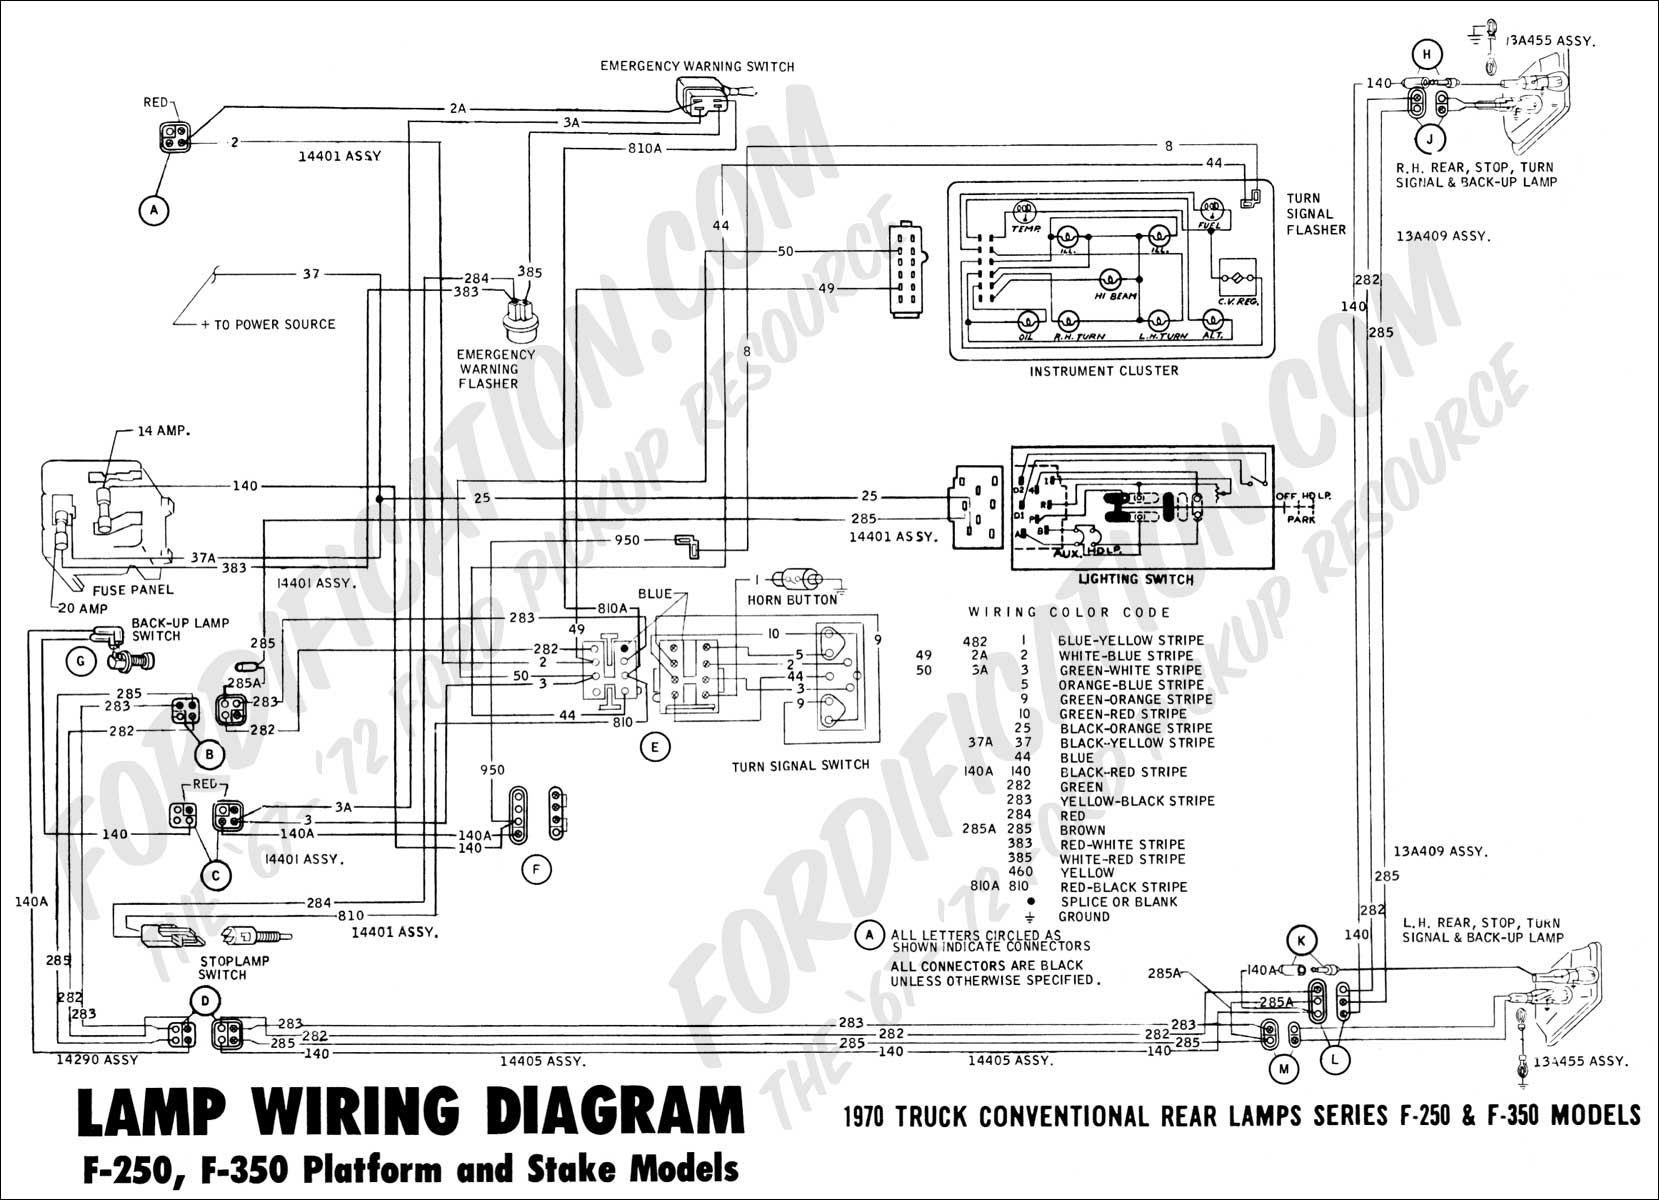 wiring diagram further 1972 gmc ford mustang wiring free engine image for user manual